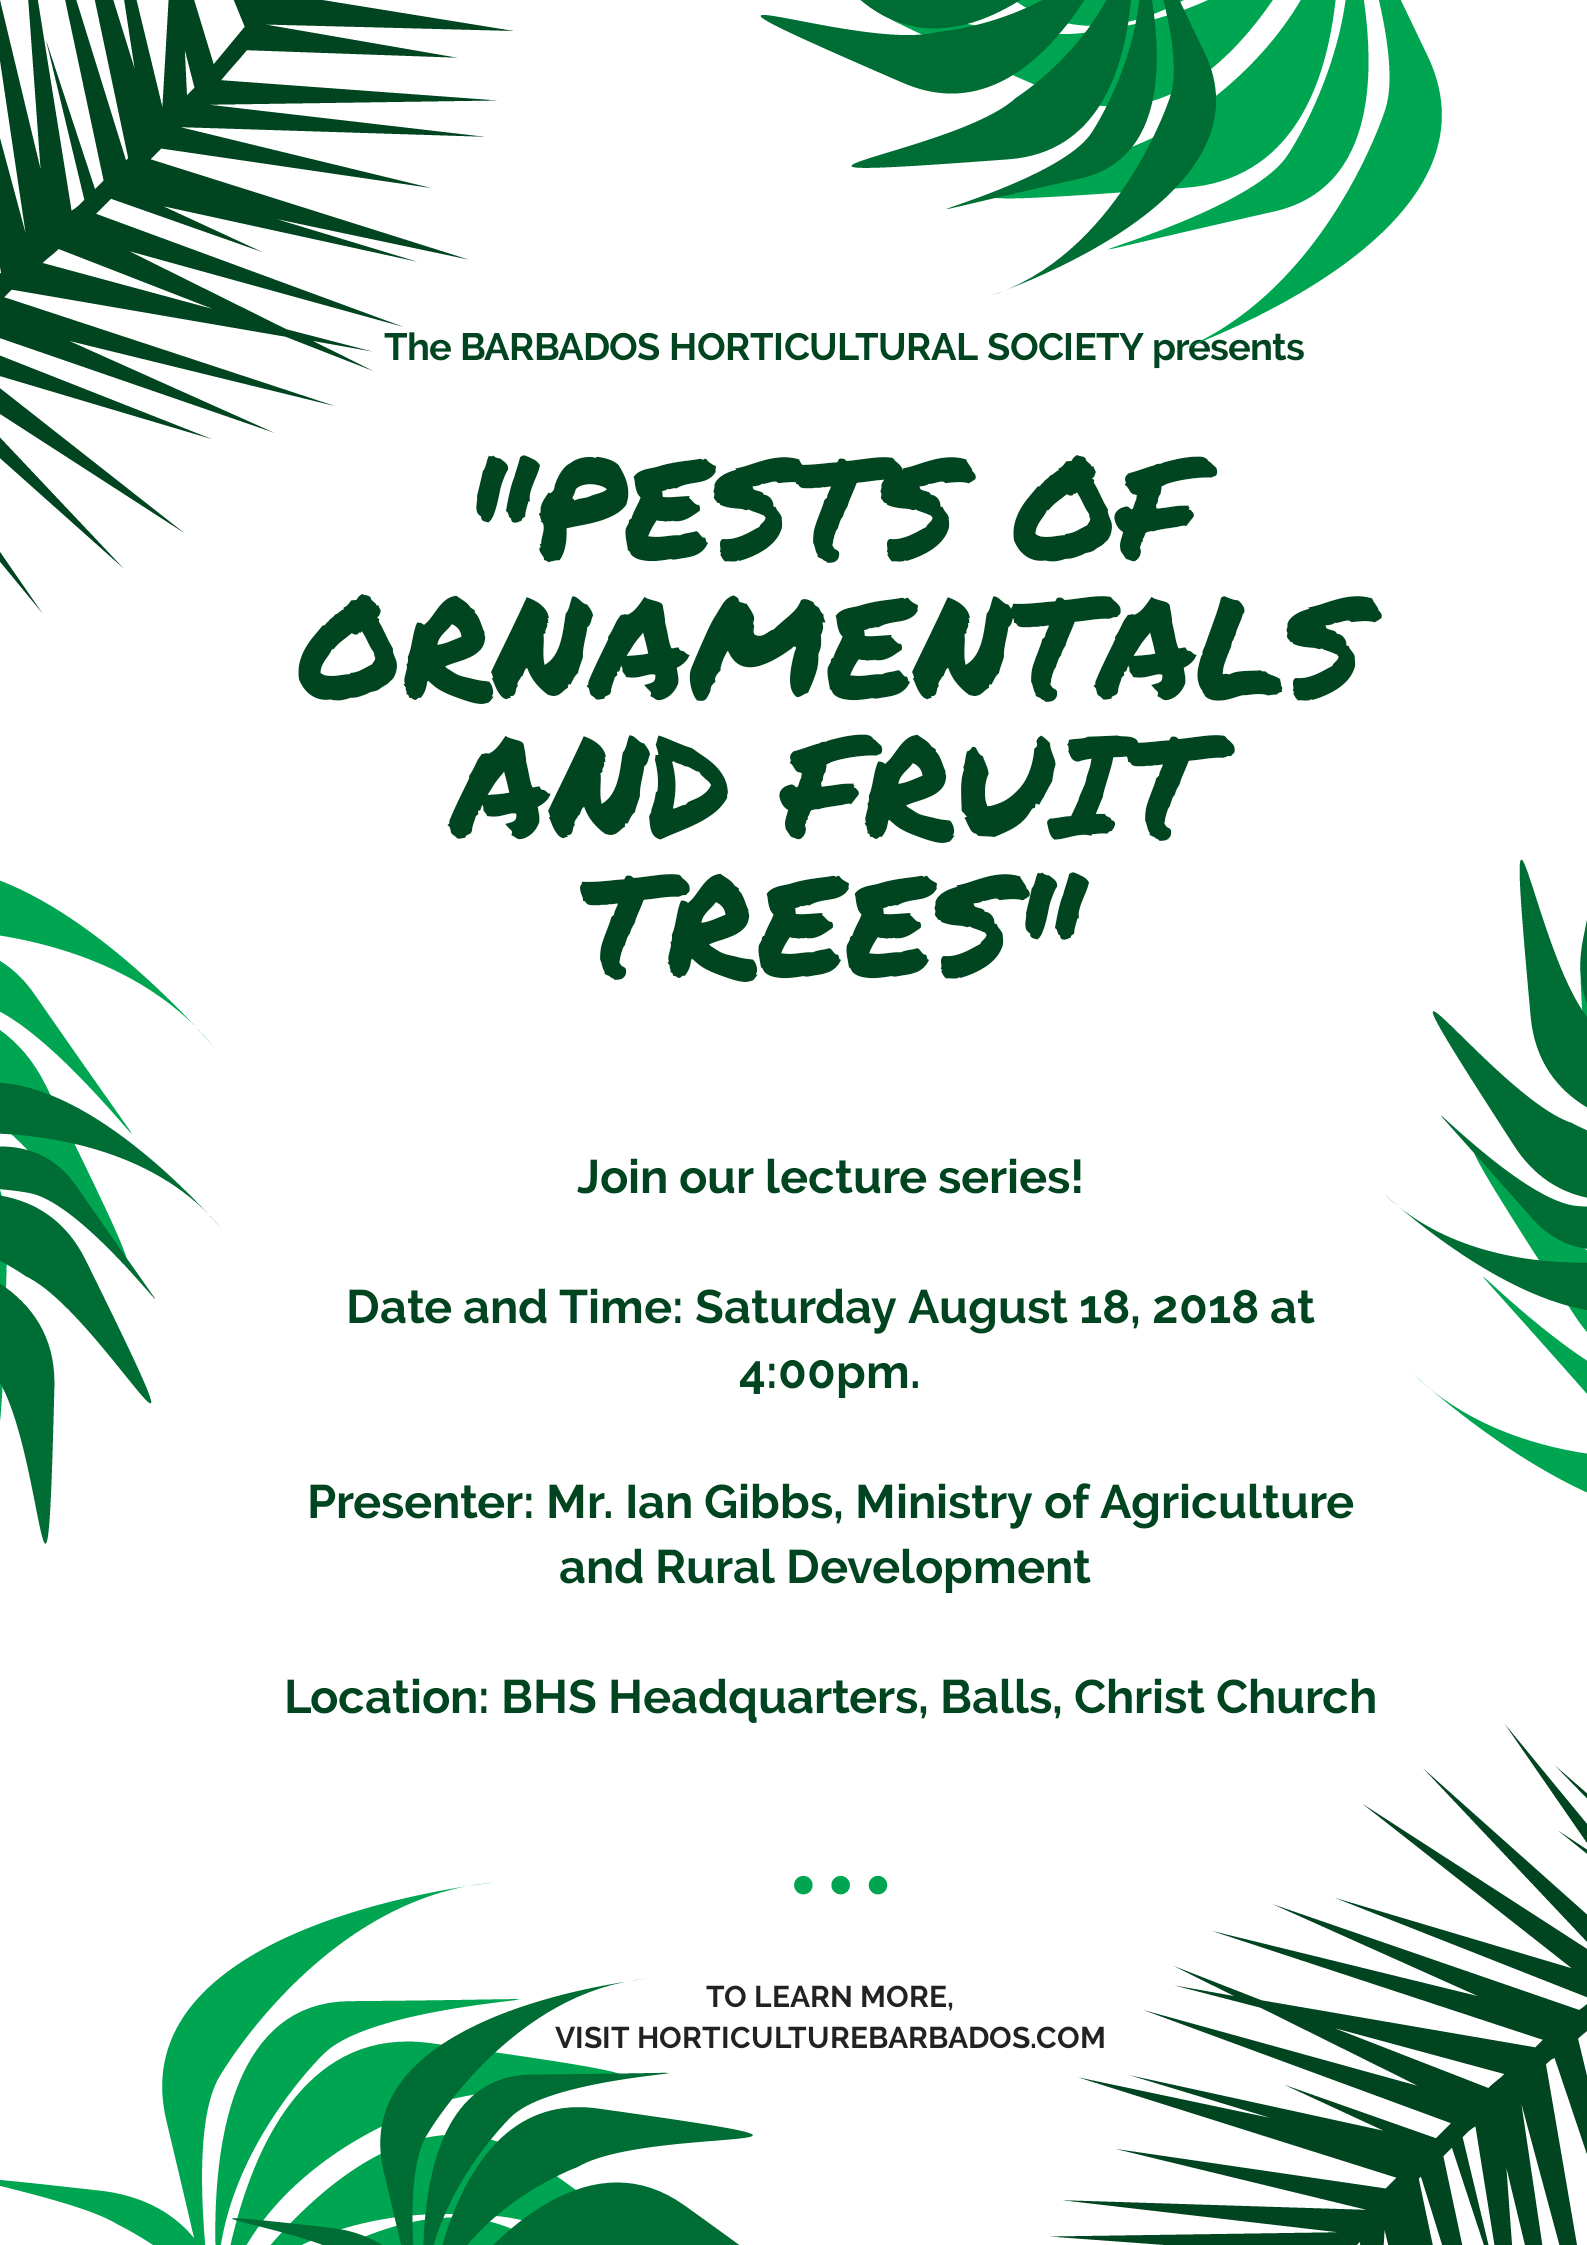 Pests of Ornamentals and Fruit Trees